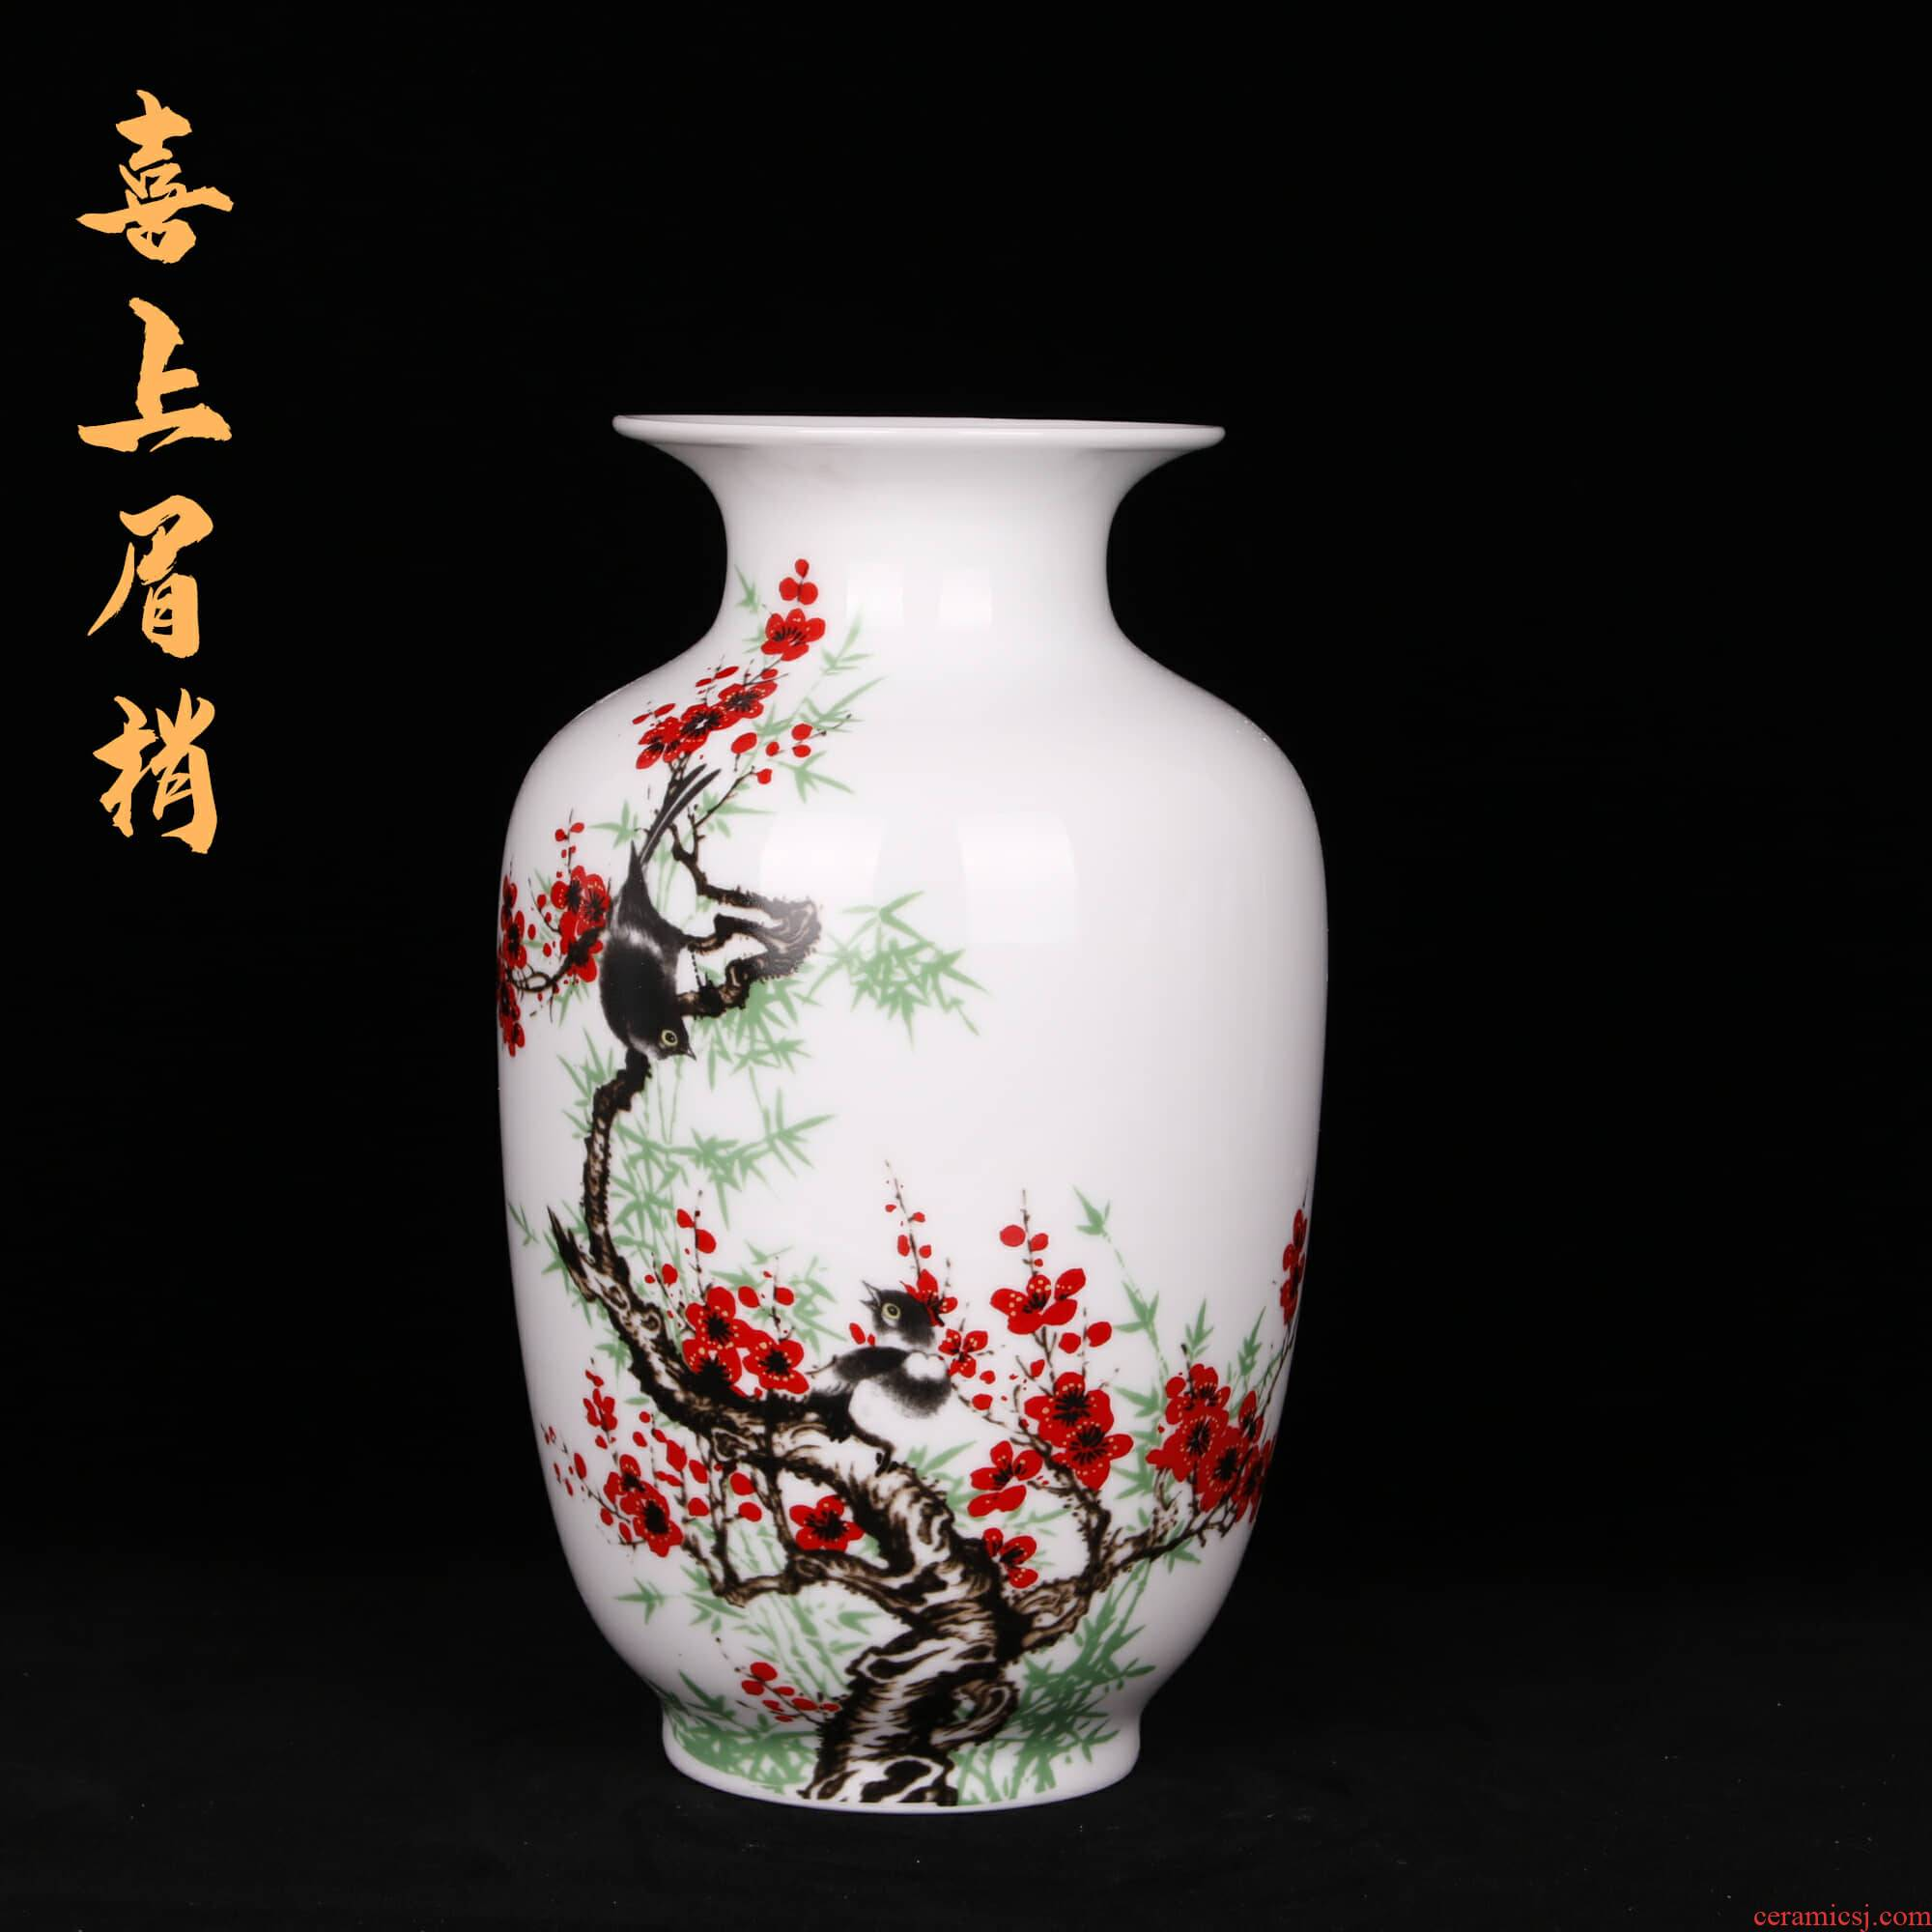 Jingdezhen imitation the qing qianlong year pastel flowers vase home sitting room adornment handicraft furnishing articles study